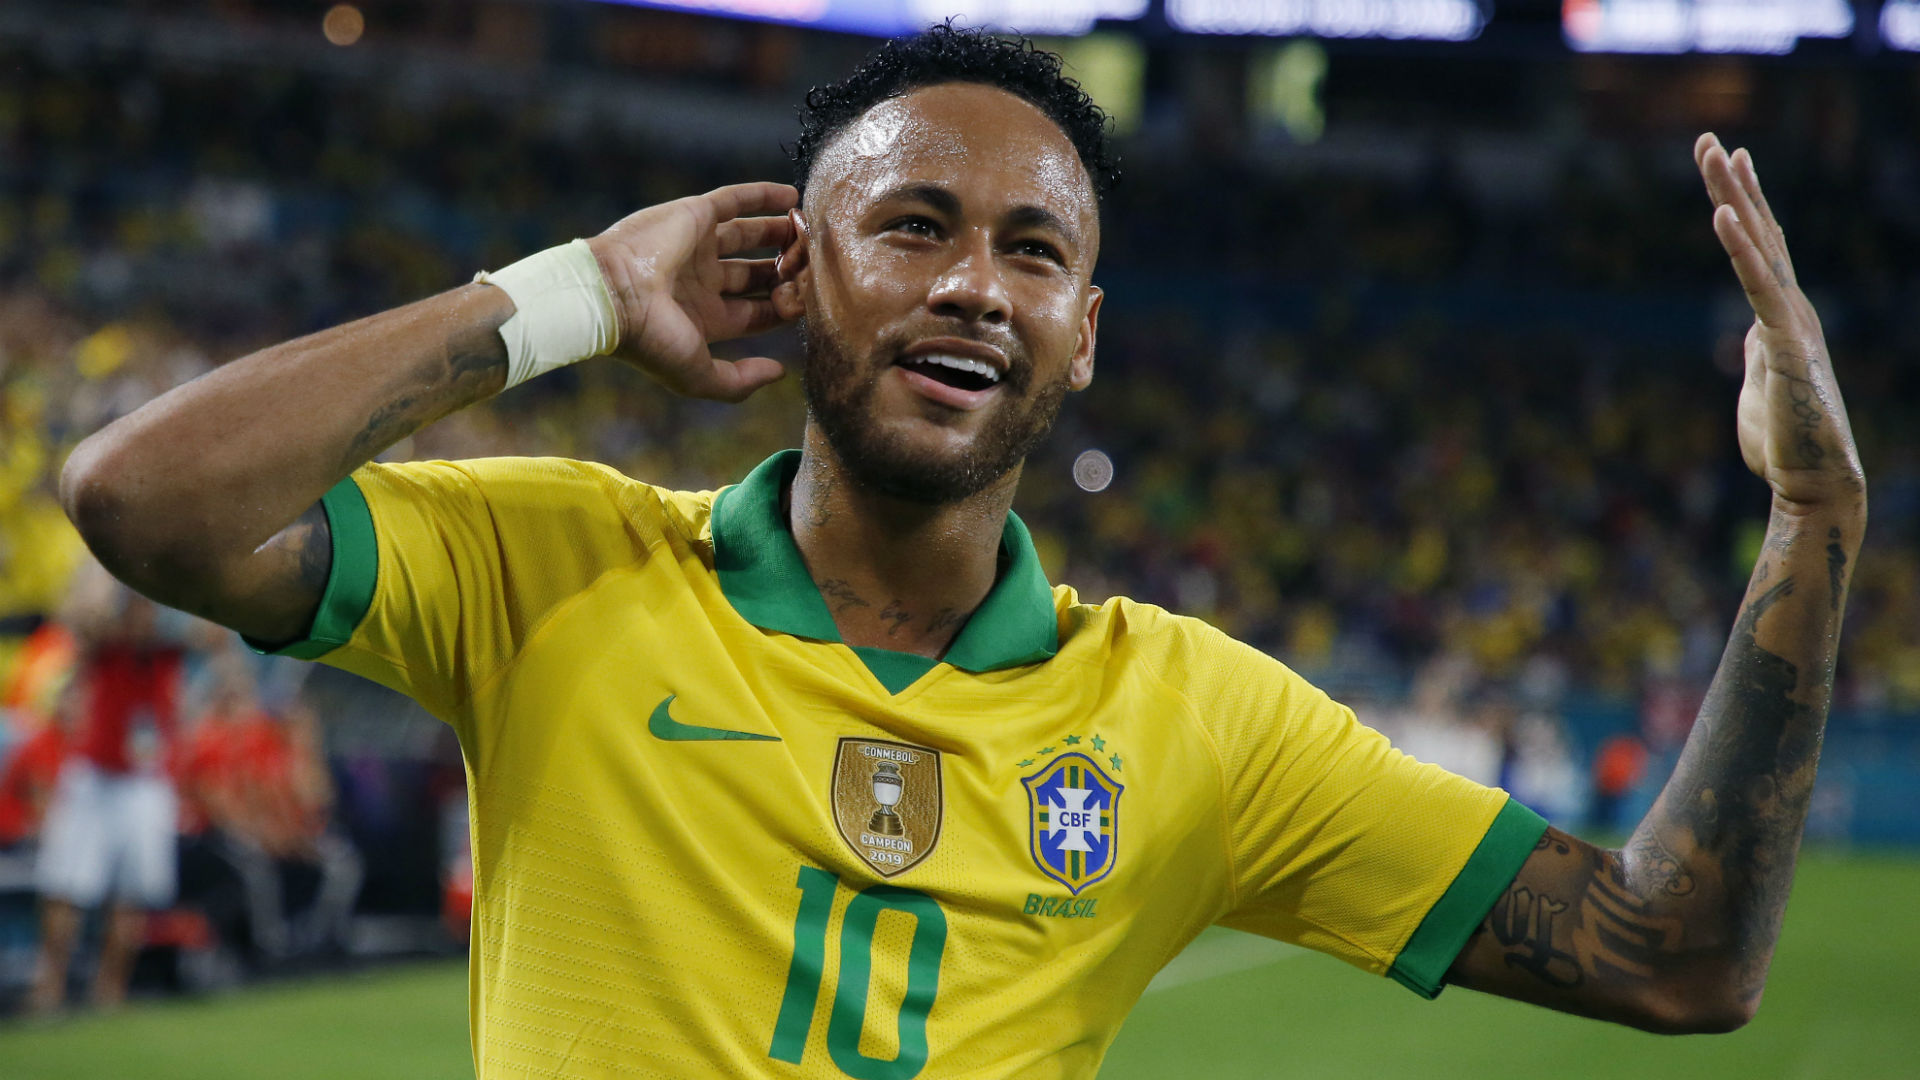 'It's always a joy to have Neymar' - PSG star's Brazil comeback delights Dani Alves